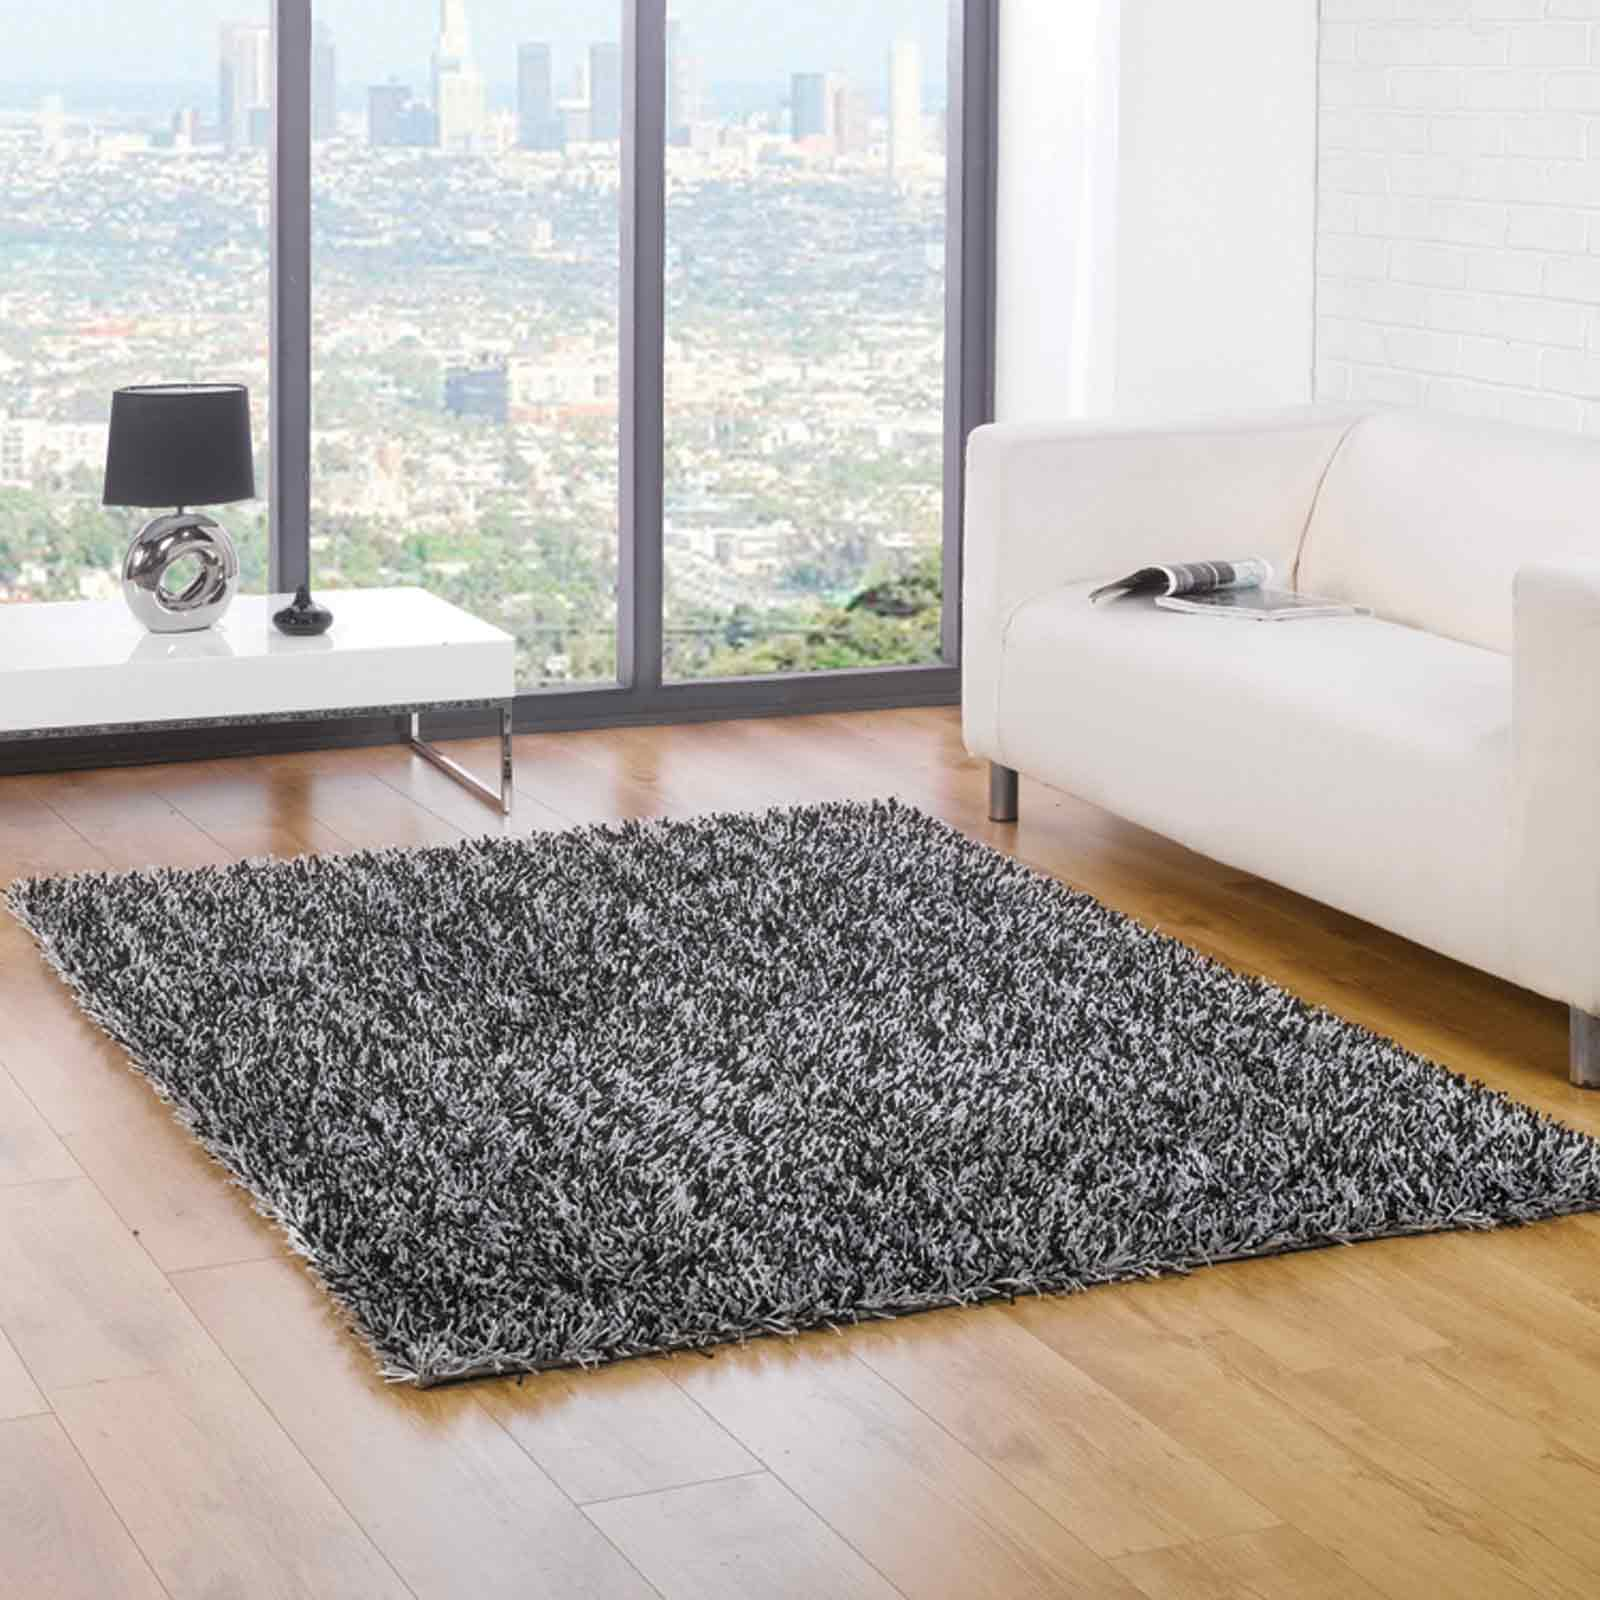 Spider Shaggy Rugs in Black Silver